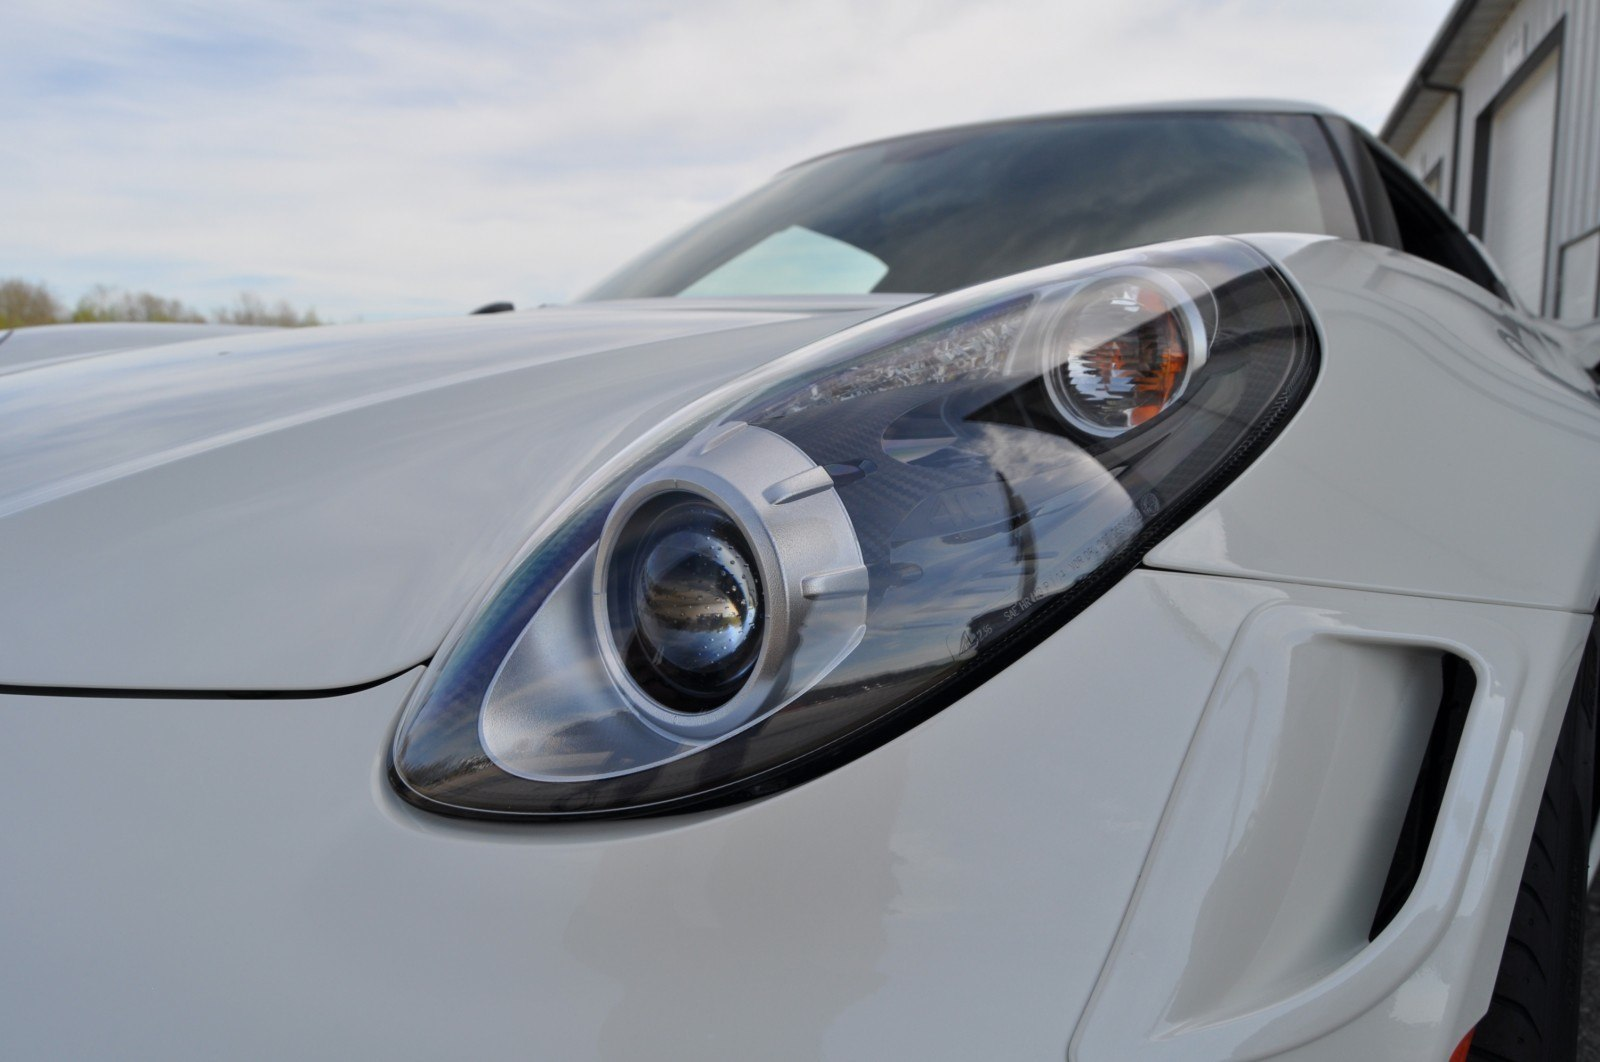 Gorgeous 2015 Alfa-Romeo 4C Revealed in Full USA Trim + New Headlights! 44